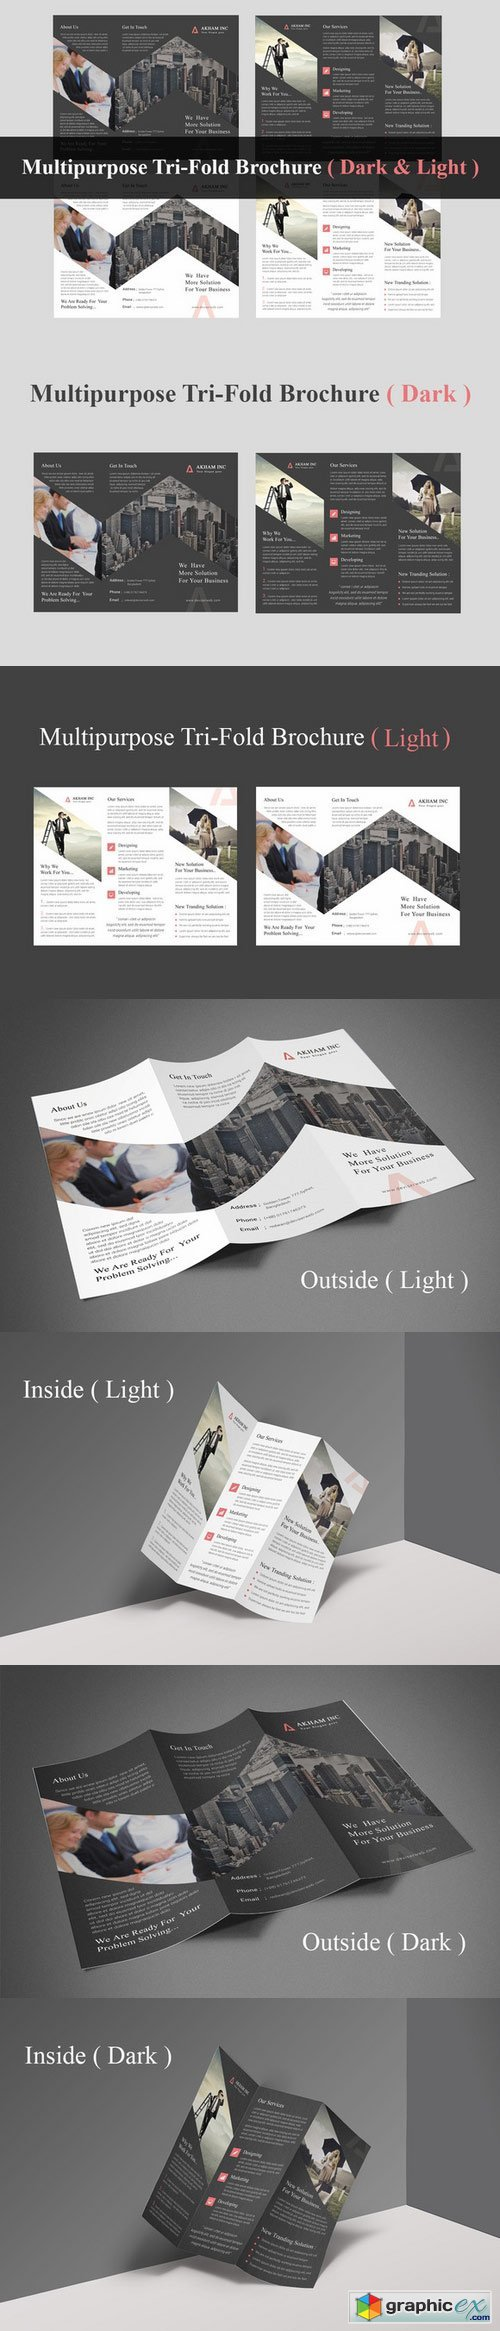 Multipurpose Tri-Fold Brochure 406449